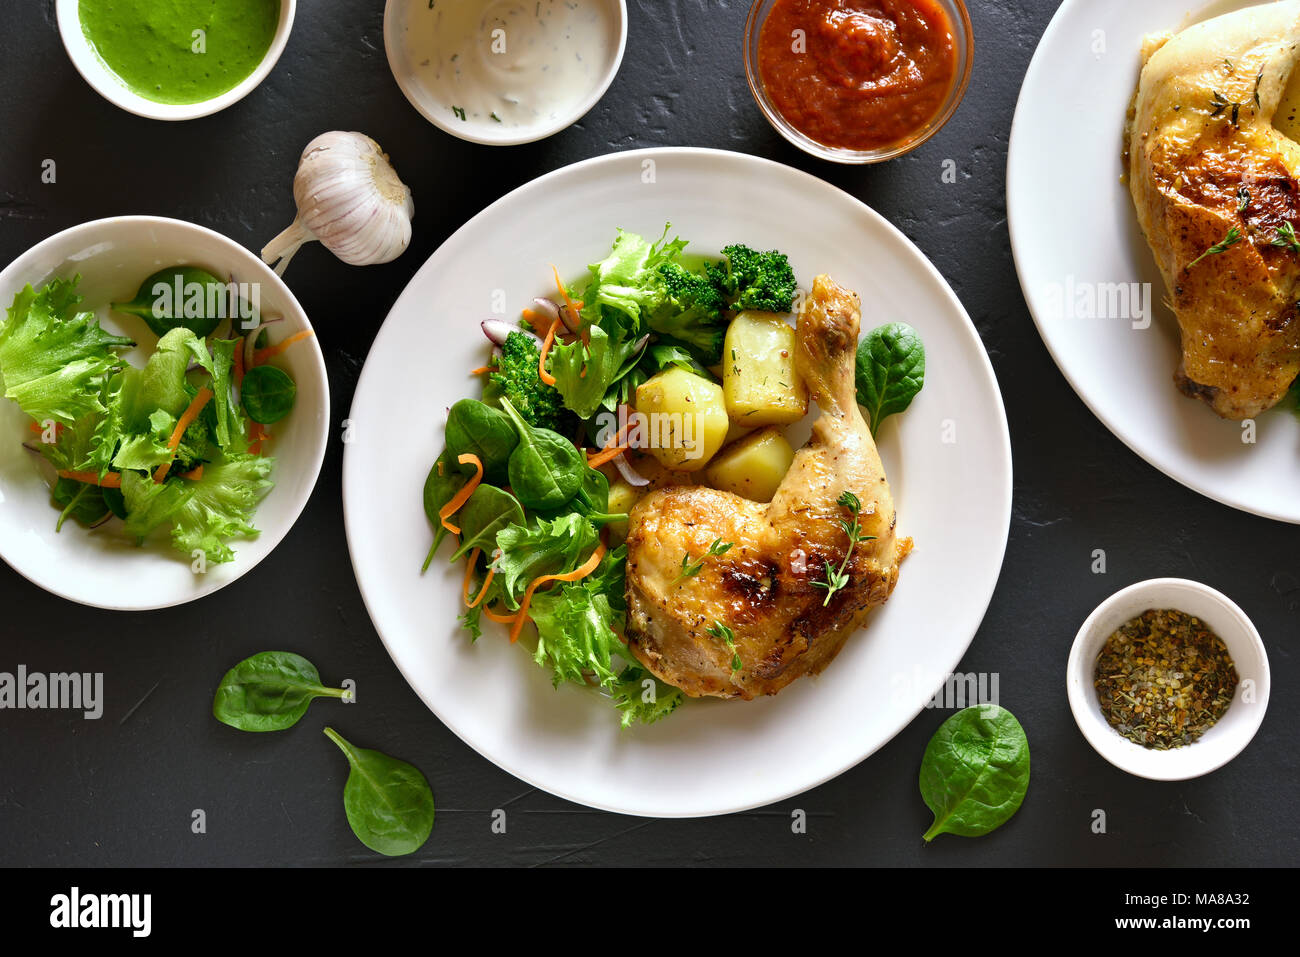 Dish fro dinner. Fried chicken leg with potato and green salad. Top view, flat lay - Stock Image